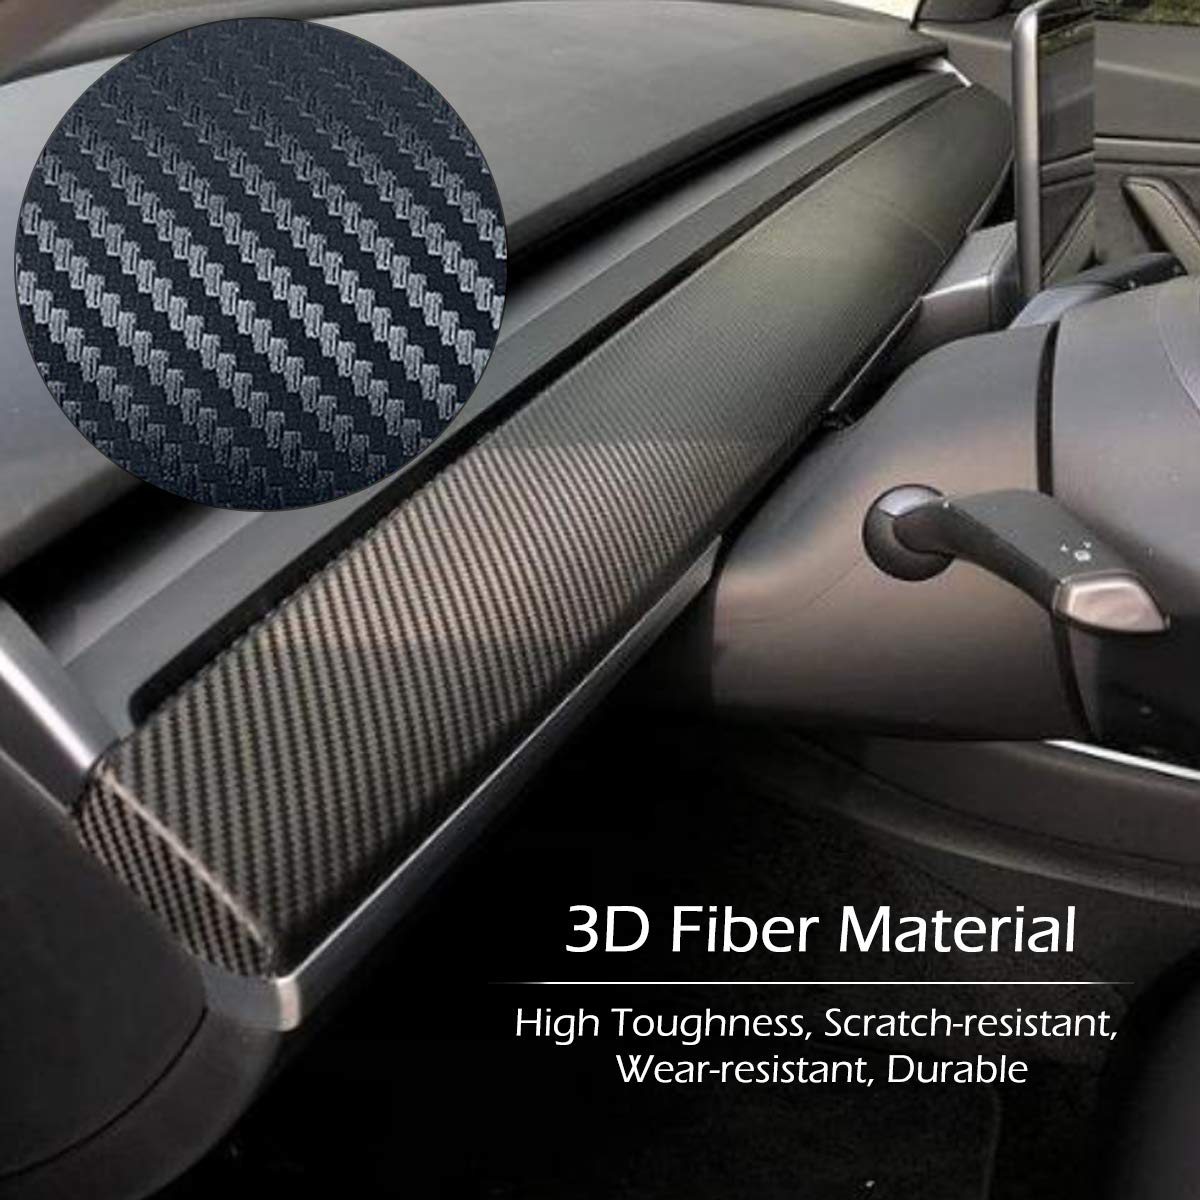 Carbon Fiber Vinyl Wrap Stickers with Air Realease Bubble Free TeslaOwner Tesla Model 3 Car Interior Dashboard Wrap Kit Stickers